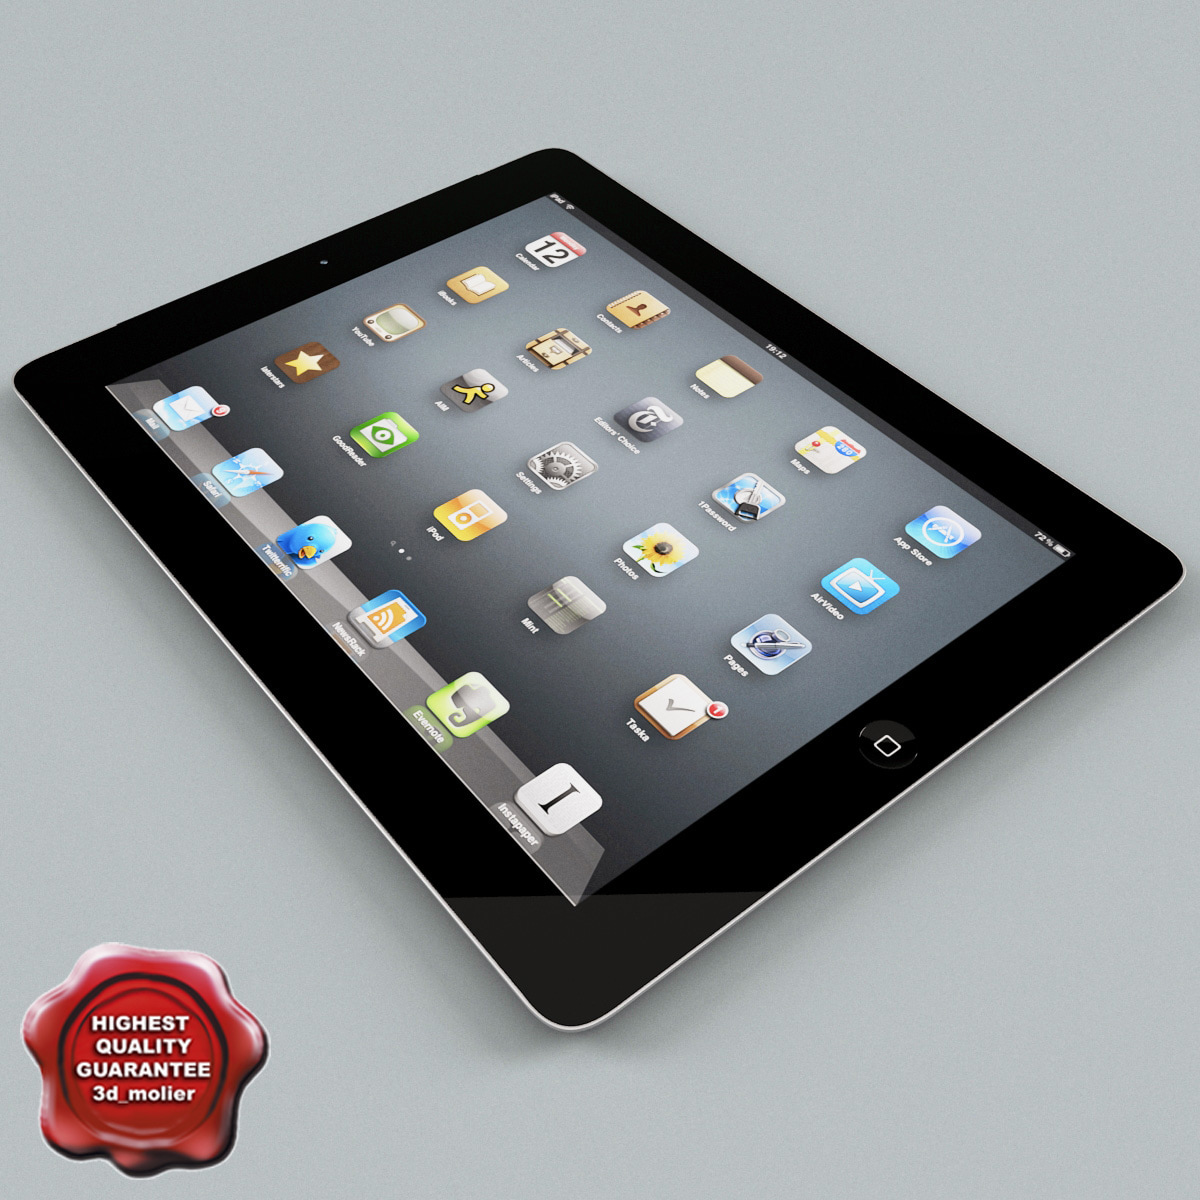 Apple_ipad2_00.jpg